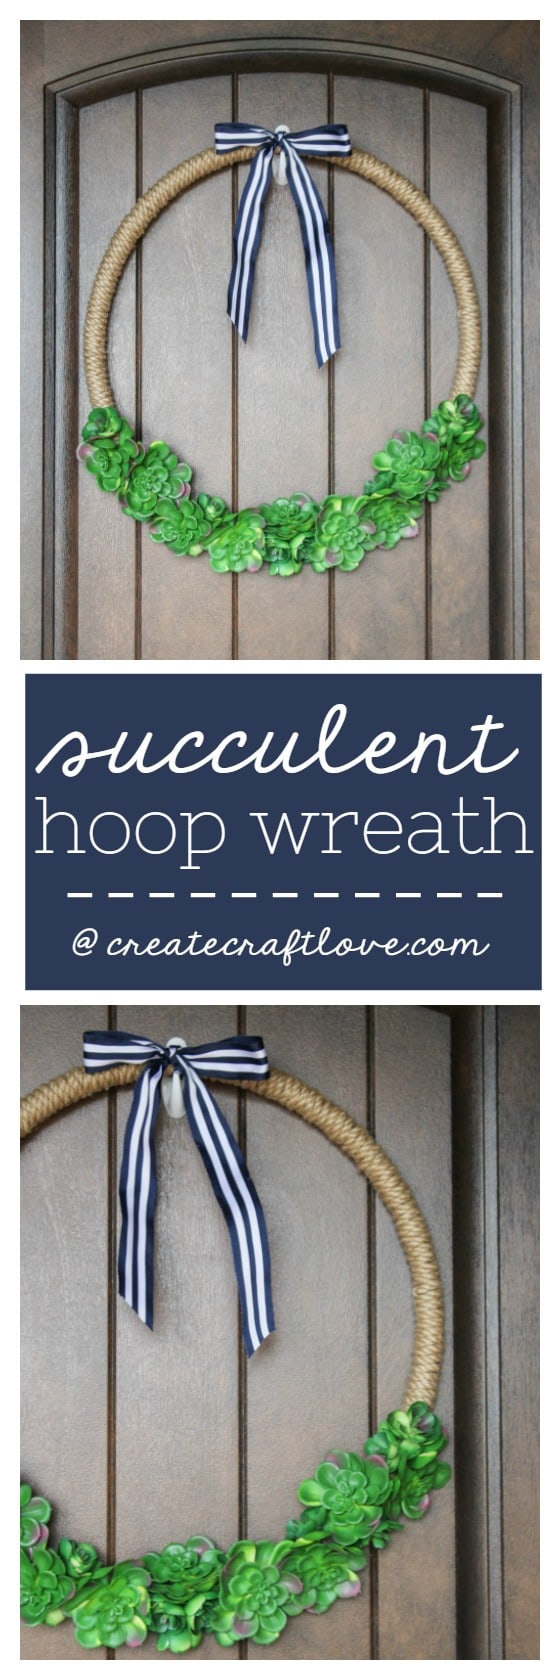 Glue rope around a hula hoop to create this hoop wreath!